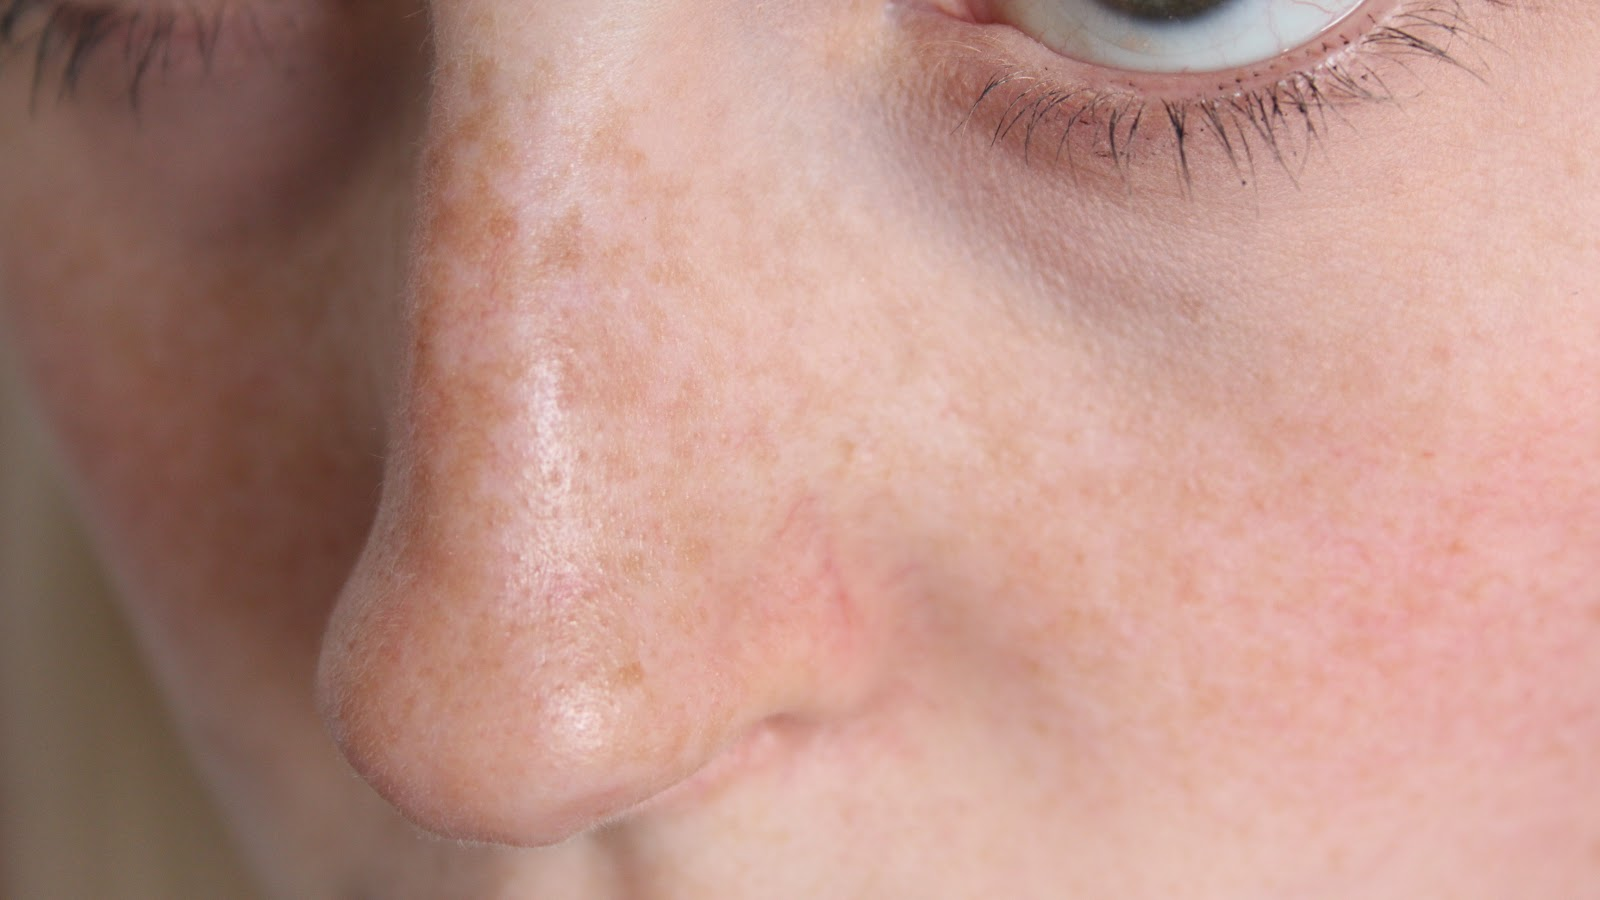 large pores on nose - photo #19